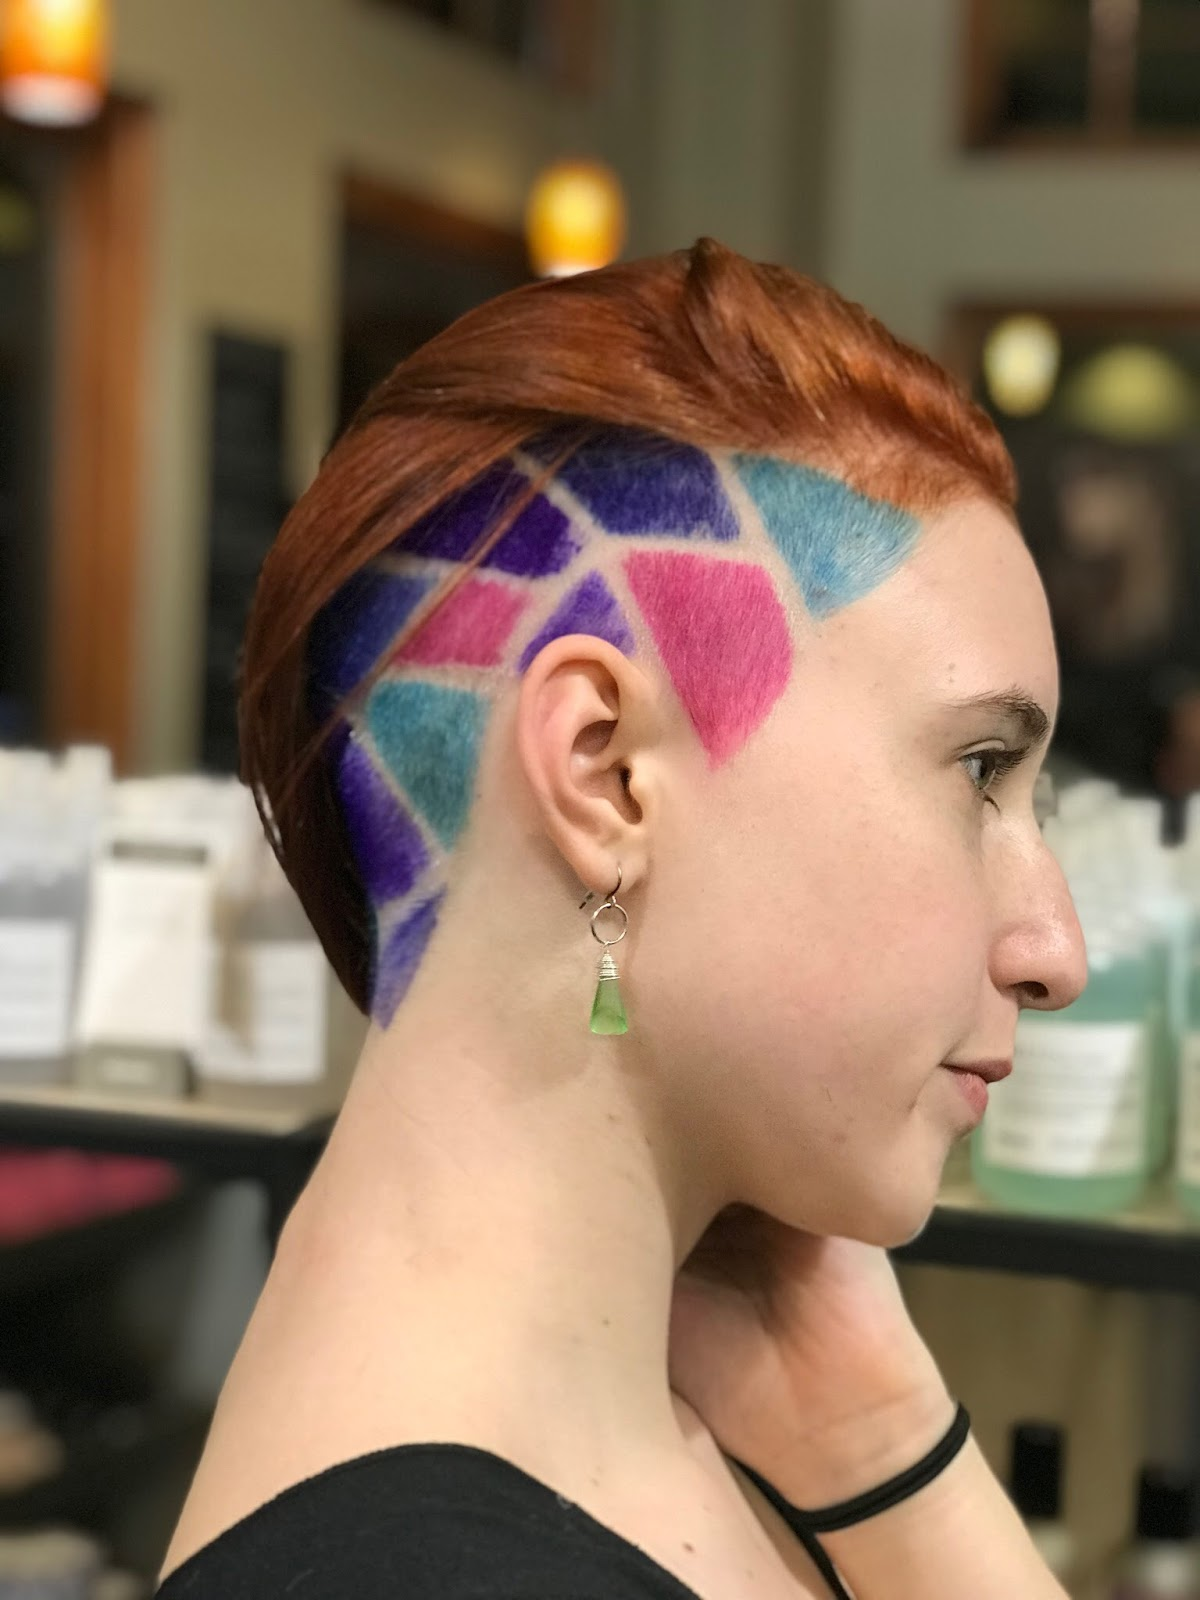 @jaimethomashair Stained glass undercut using Pulp Riot at Philospohi Salon in Columbus, Ohio